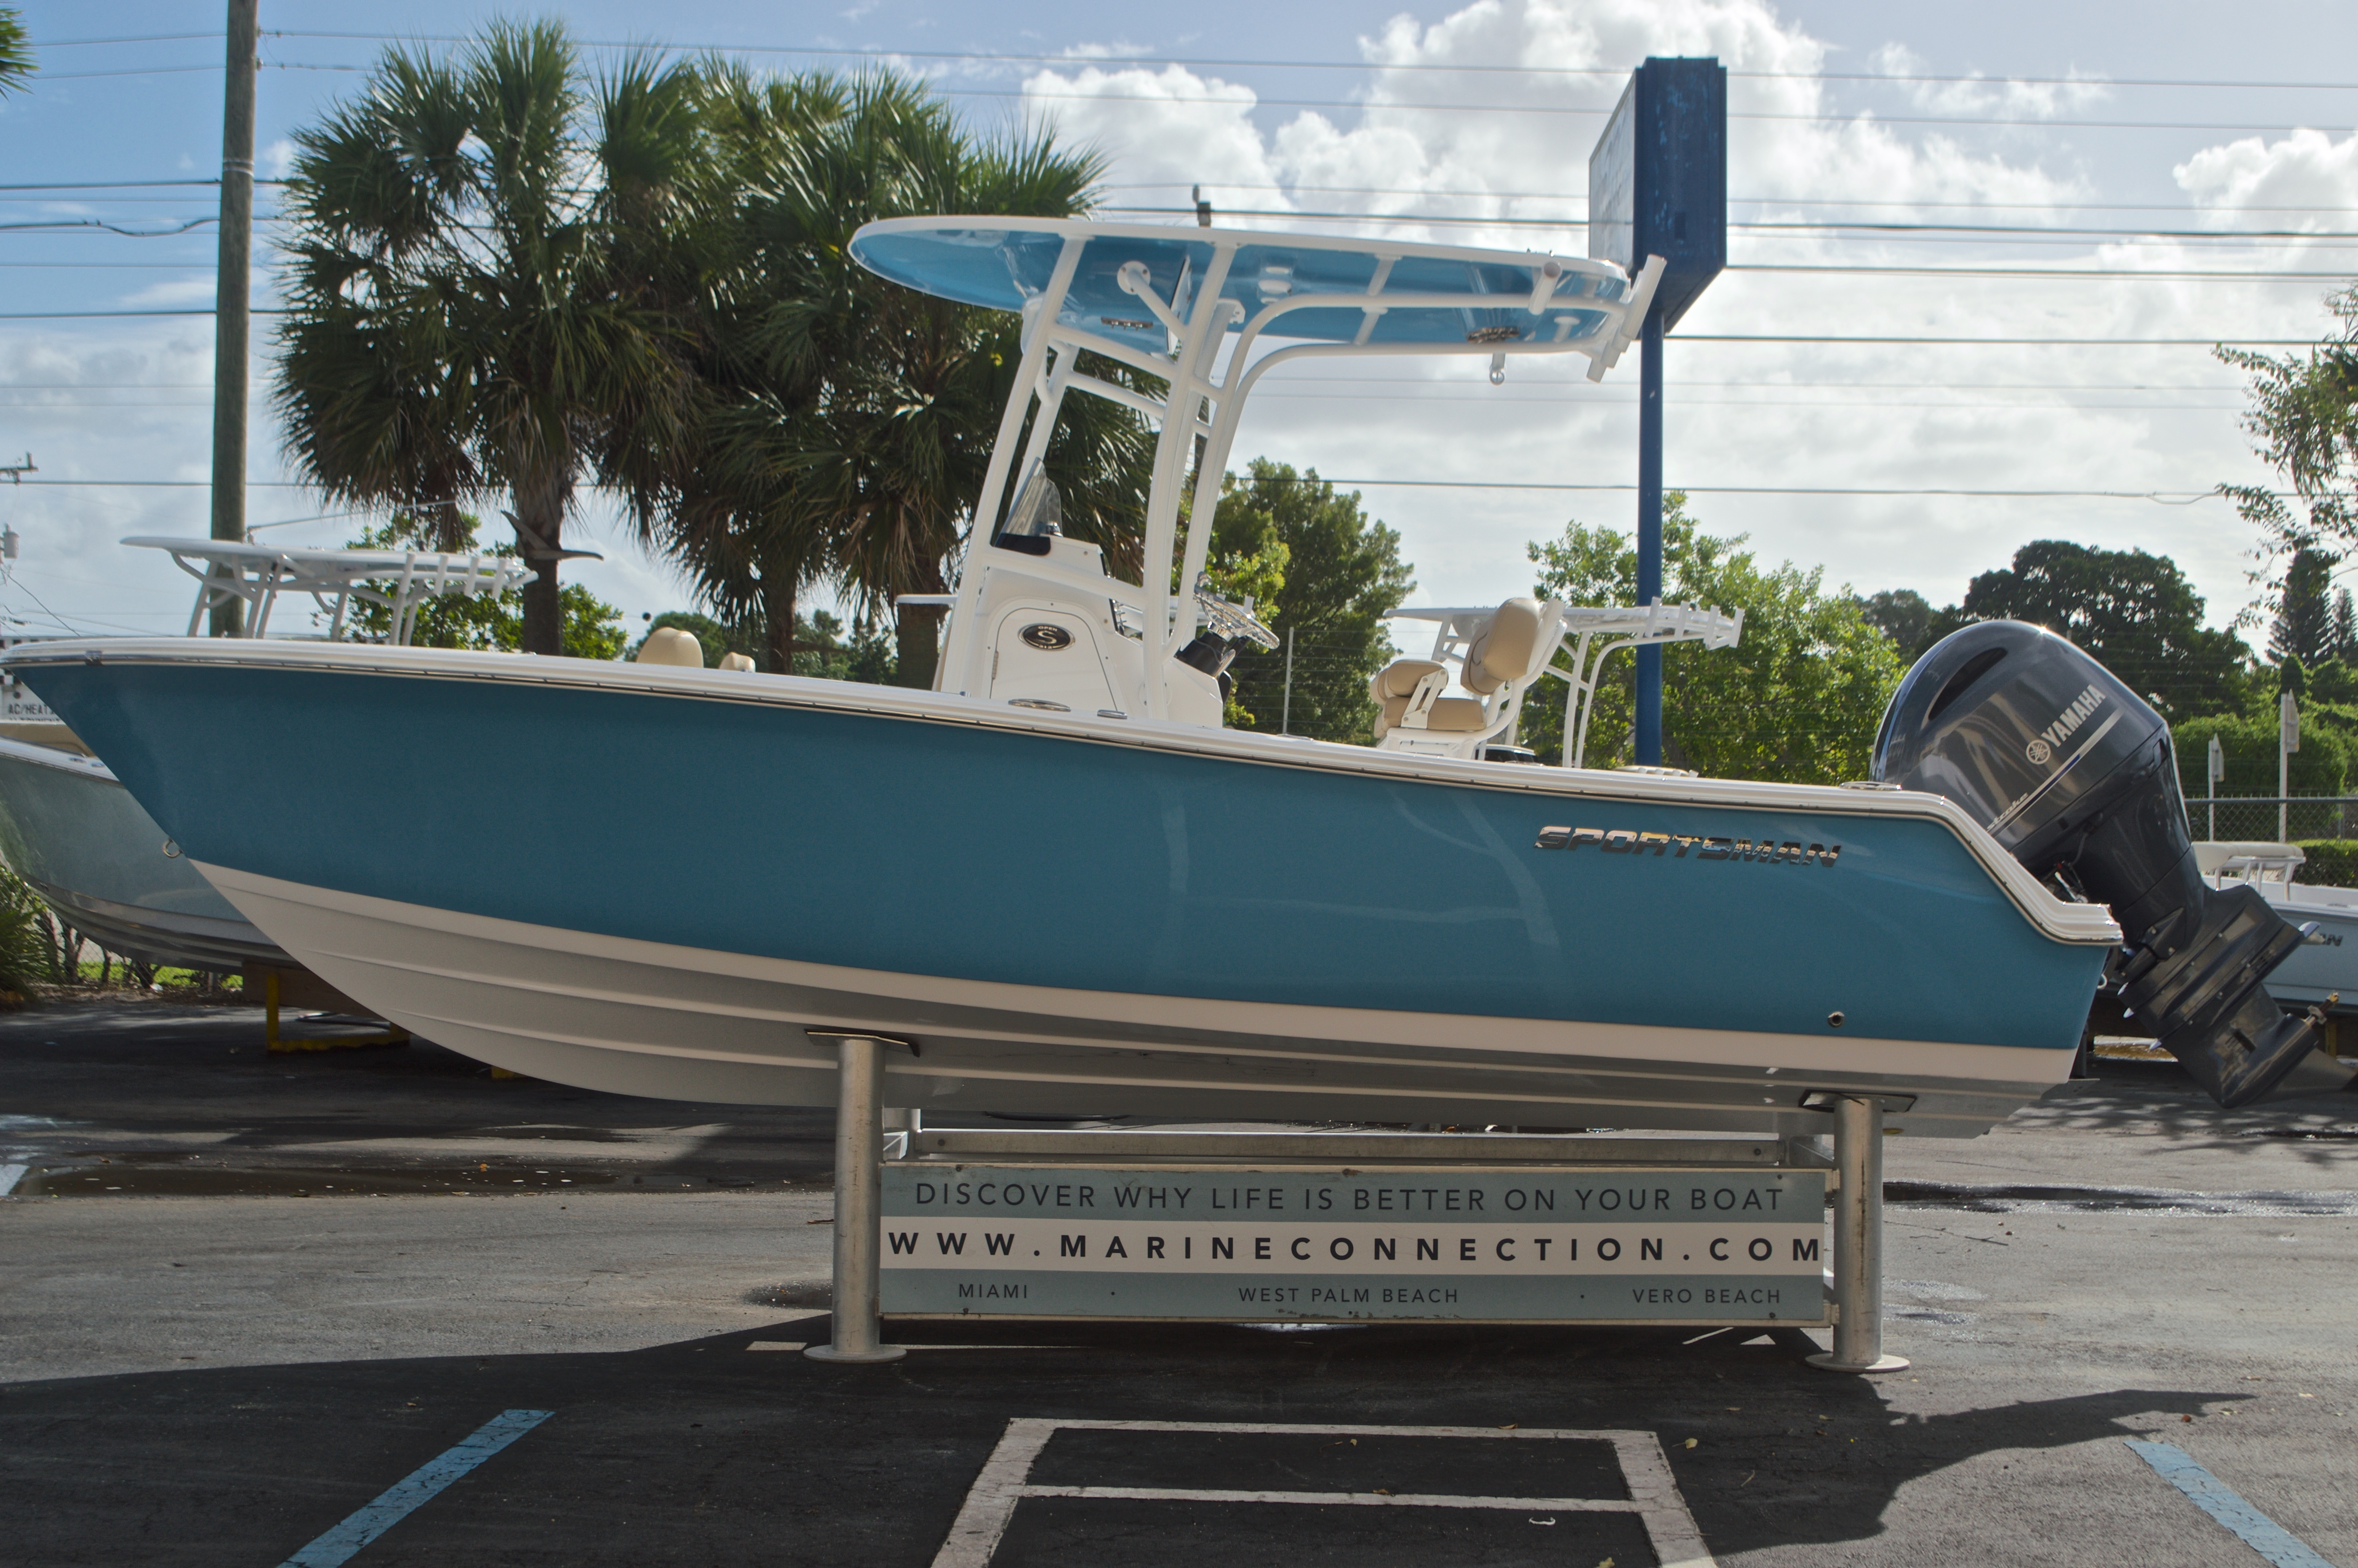 Thumbnail 5 for New 2017 Sportsman Open 212 Center Console boat for sale in West Palm Beach, FL